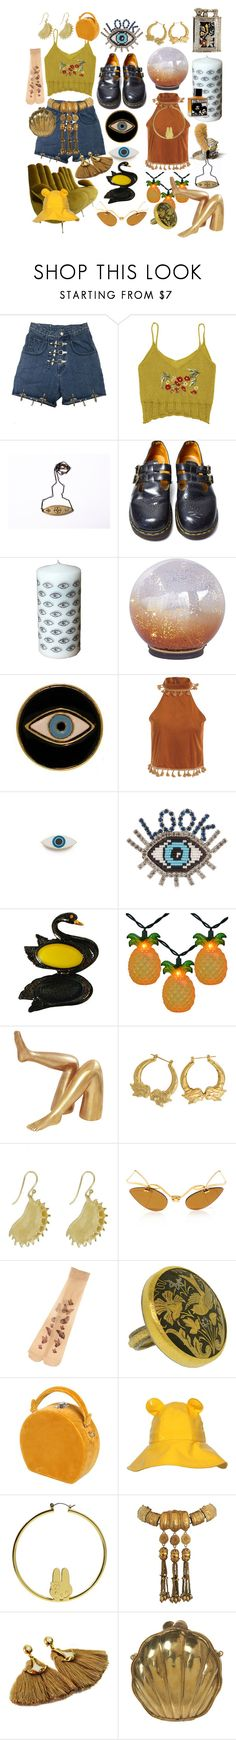 """""""golden eye"""" by aintnodisco ❤ liked on Polyvore featuring Dr. Martens, Pier 1 Imports, E.vil, Georgia Perry, Shourouk, Kelly Wearstler, Annette Ferdinandsen, Bertoni, Christian Lacroix and ara"""